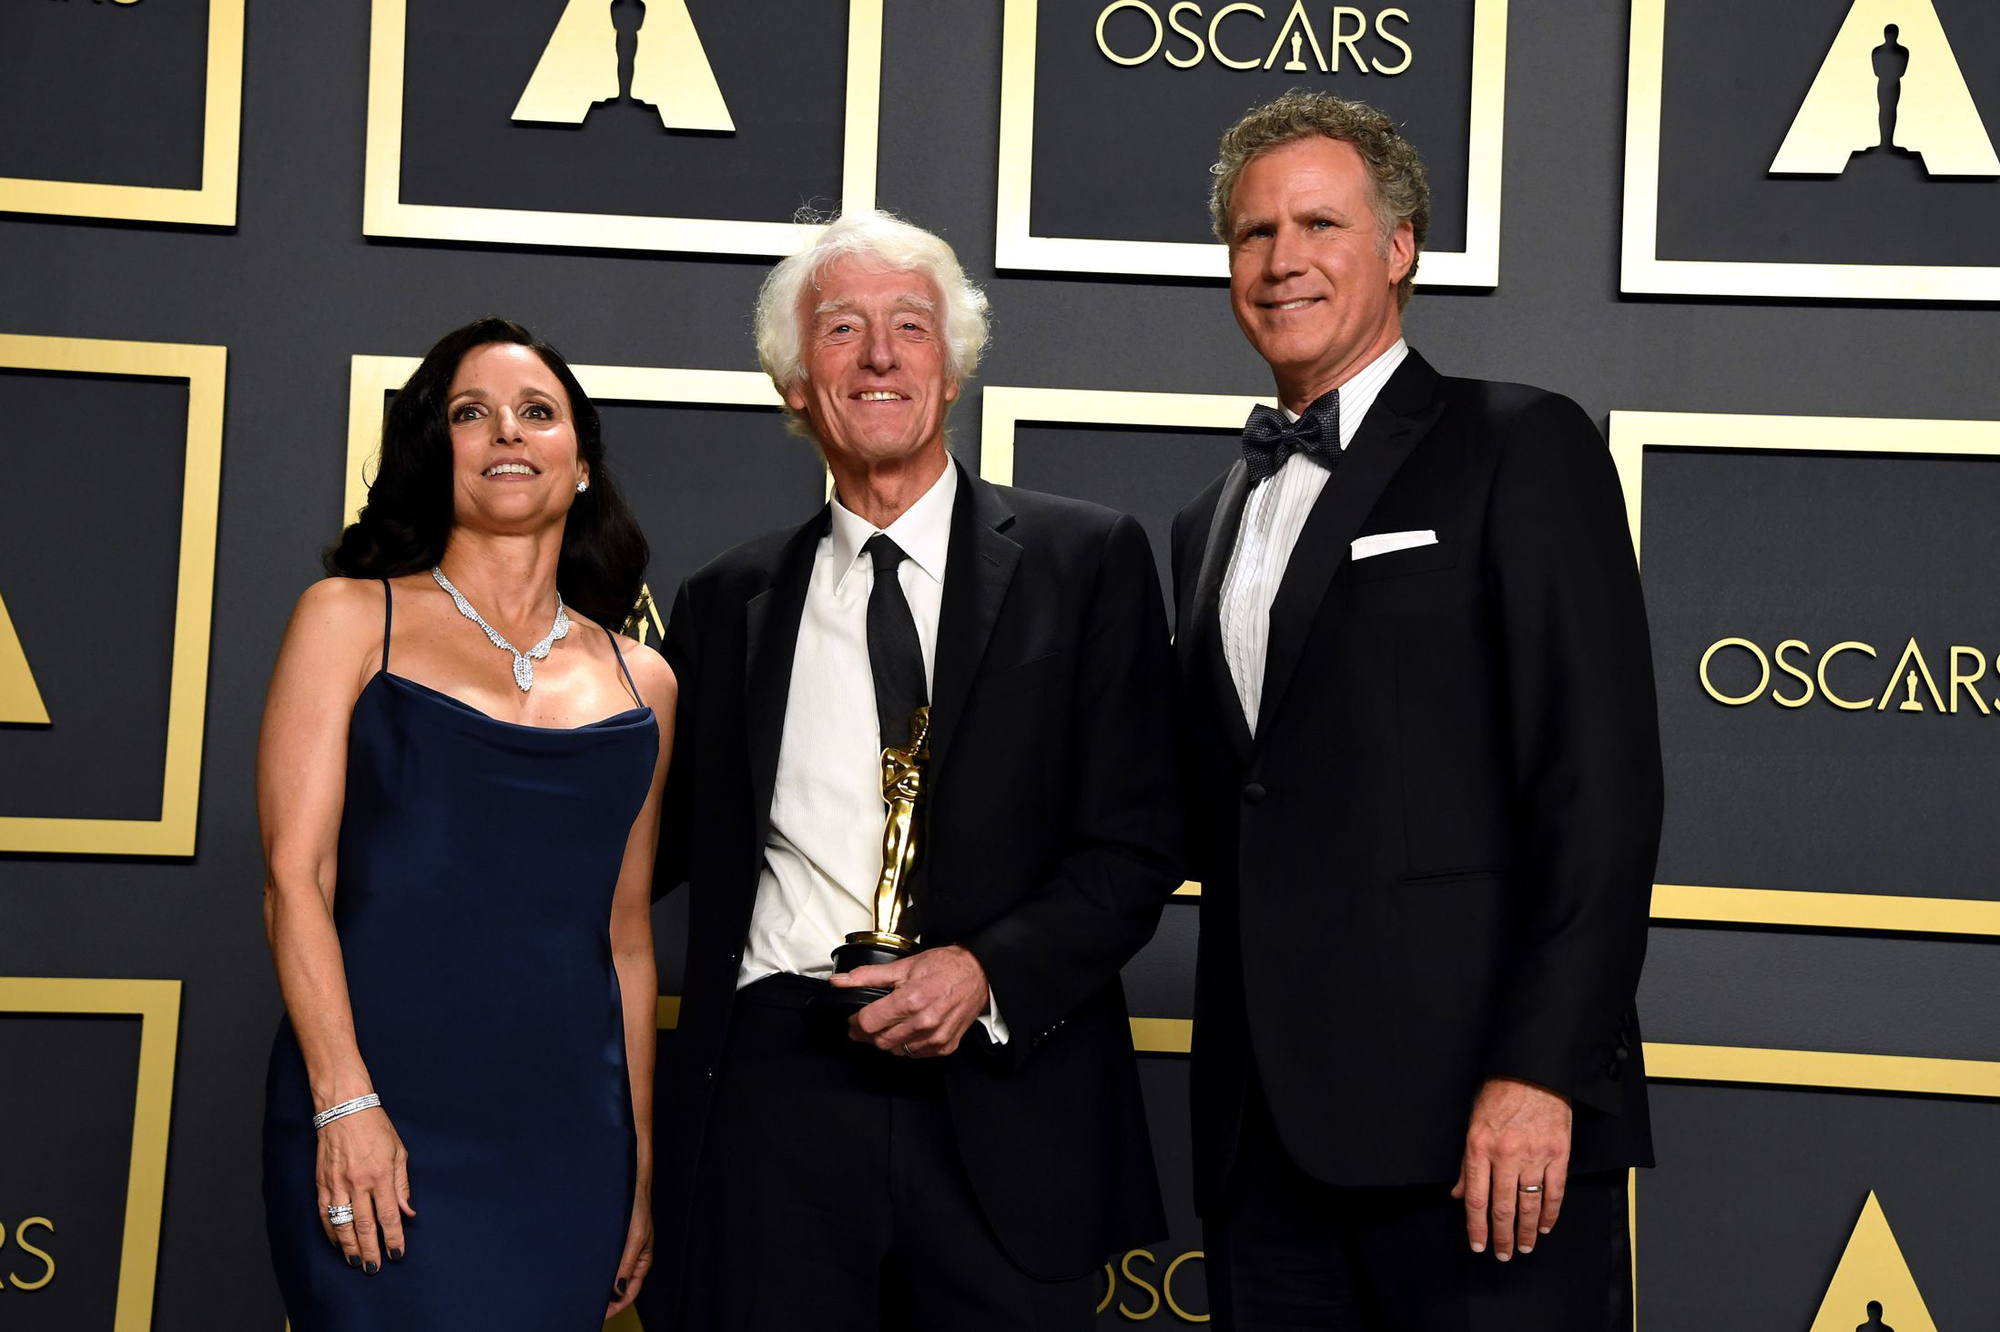 Julia Louis-Dreyfus and Will Ferrell present Roger Deakins with the Best Cinematography Oscar. Credit: Jennifer Graylock/PA Wire